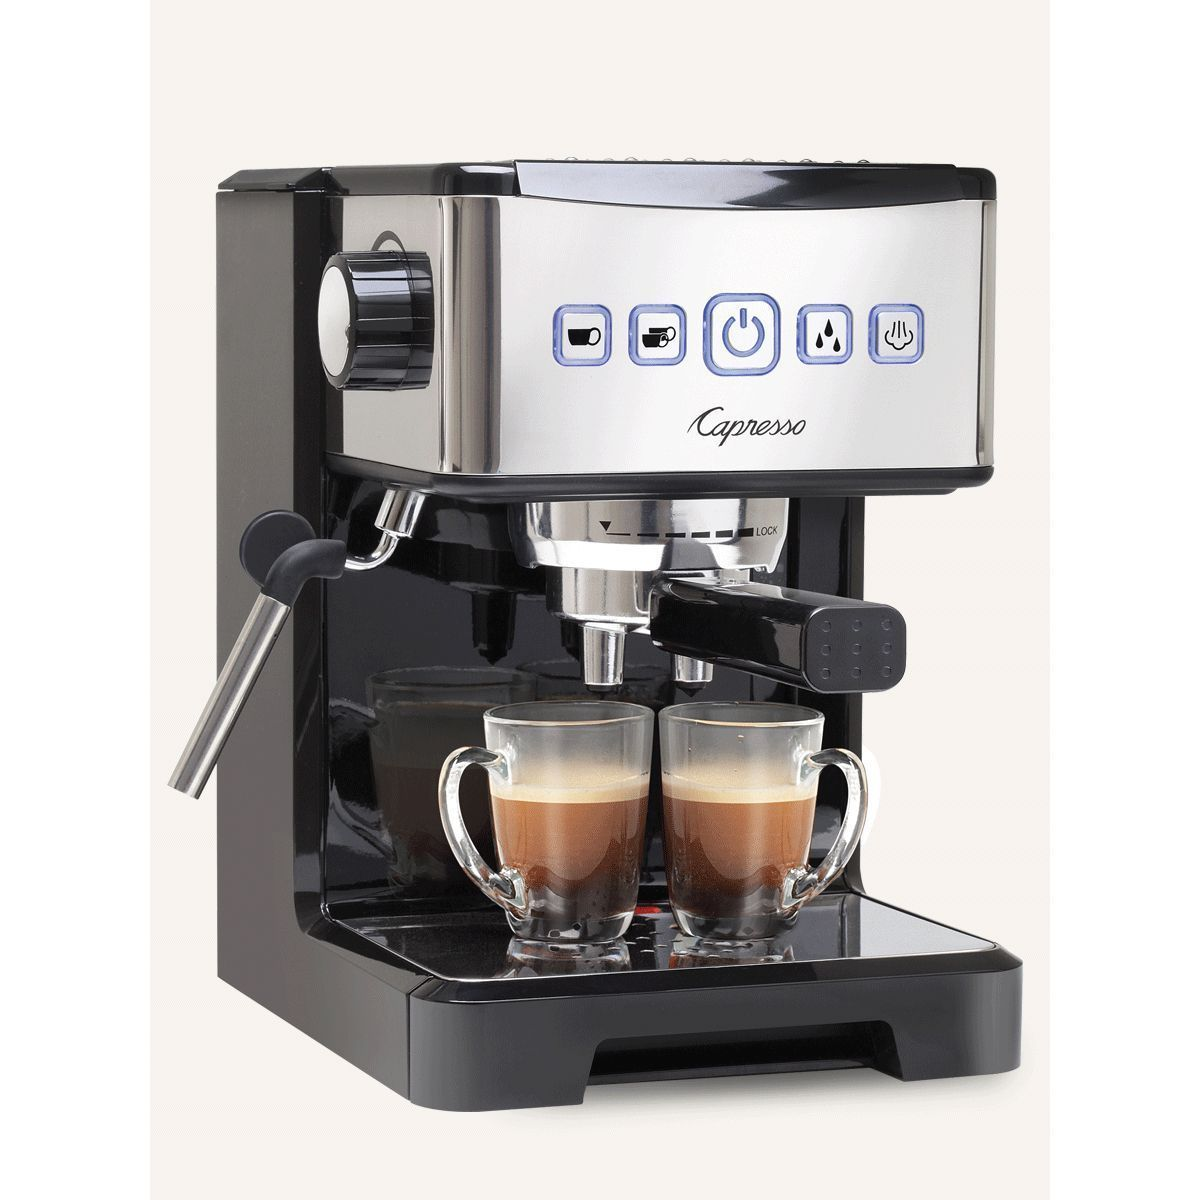 Overstock.com: Online Shopping - Bedding, Furniture, Electronics, Jewelry, Clothing & more #cappuccinomachine Capresso Ultima PRO Programmable Espresso & Cappuccino Machine (Capresso Ultima PRO Espresso & Cappuccino Machine), Black (Plastic) #cappuccinomachine Overstock.com: Online Shopping - Bedding, Furniture, Electronics, Jewelry, Clothing & more #cappuccinomachine Capresso Ultima PRO Programmable Espresso & Cappuccino Machine (Capresso Ultima PRO Espresso & Cappuccino Machine), Black (Plasti #cappuccinomachine